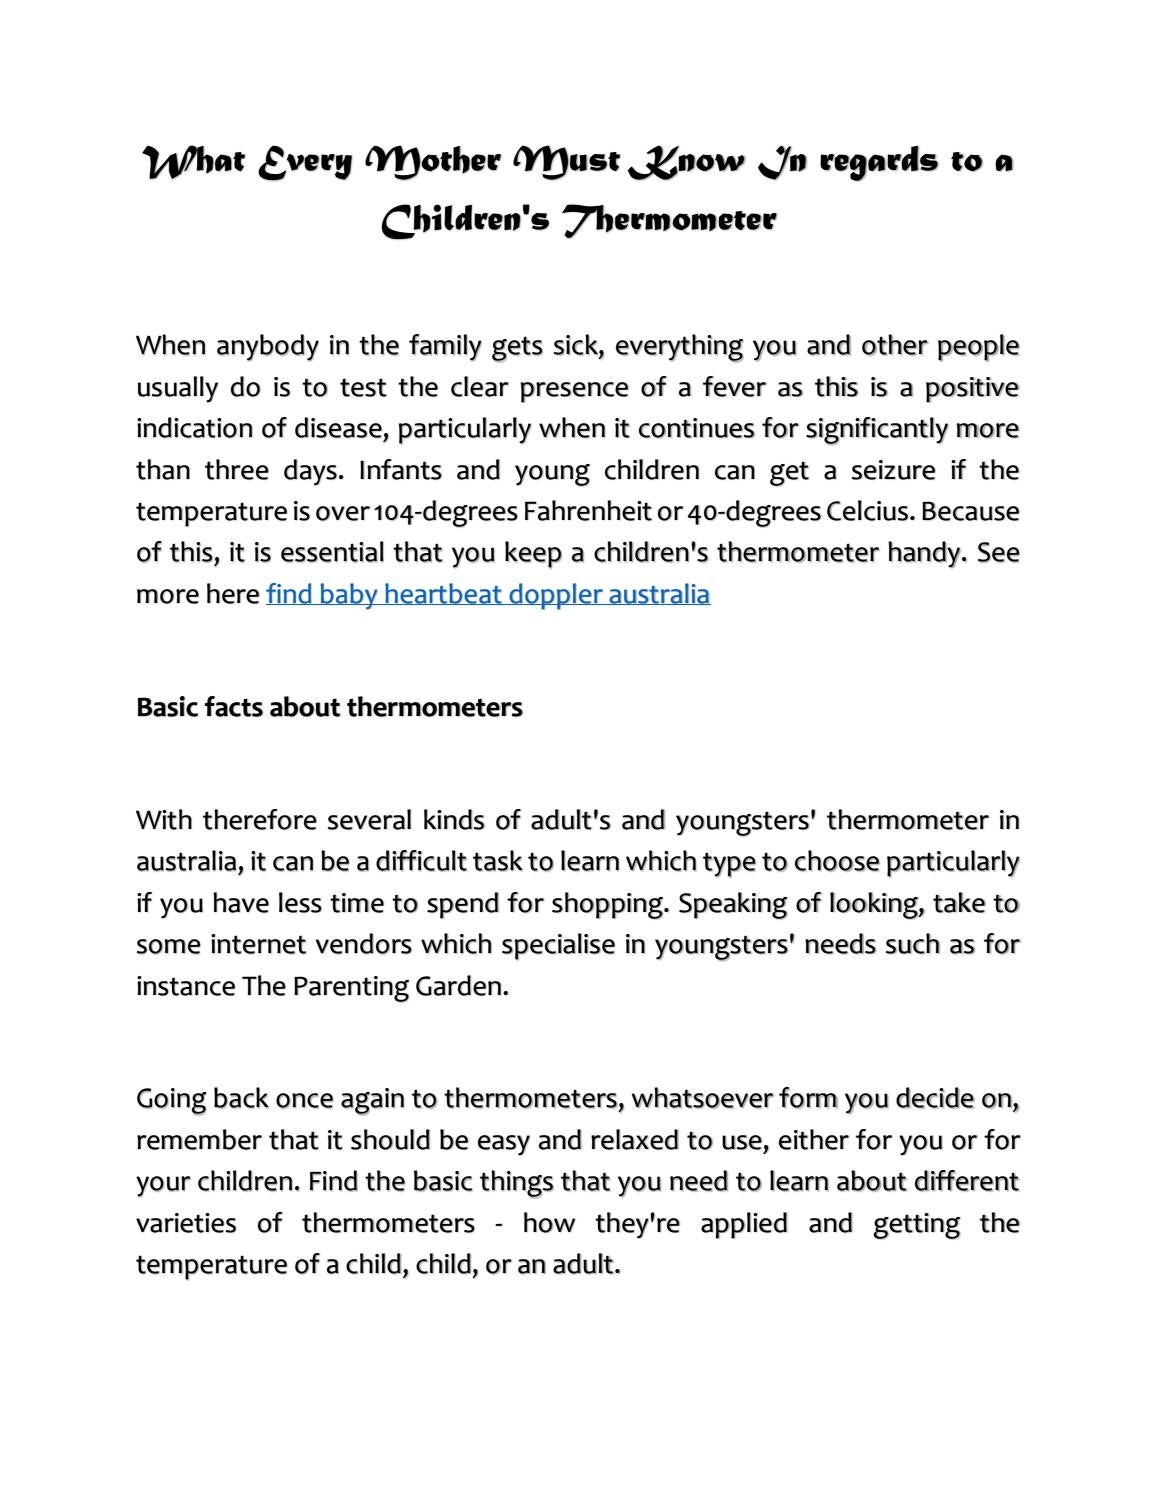 Thermometer Australia What Every Mother Must Know In Regards To A Children S Thermometer